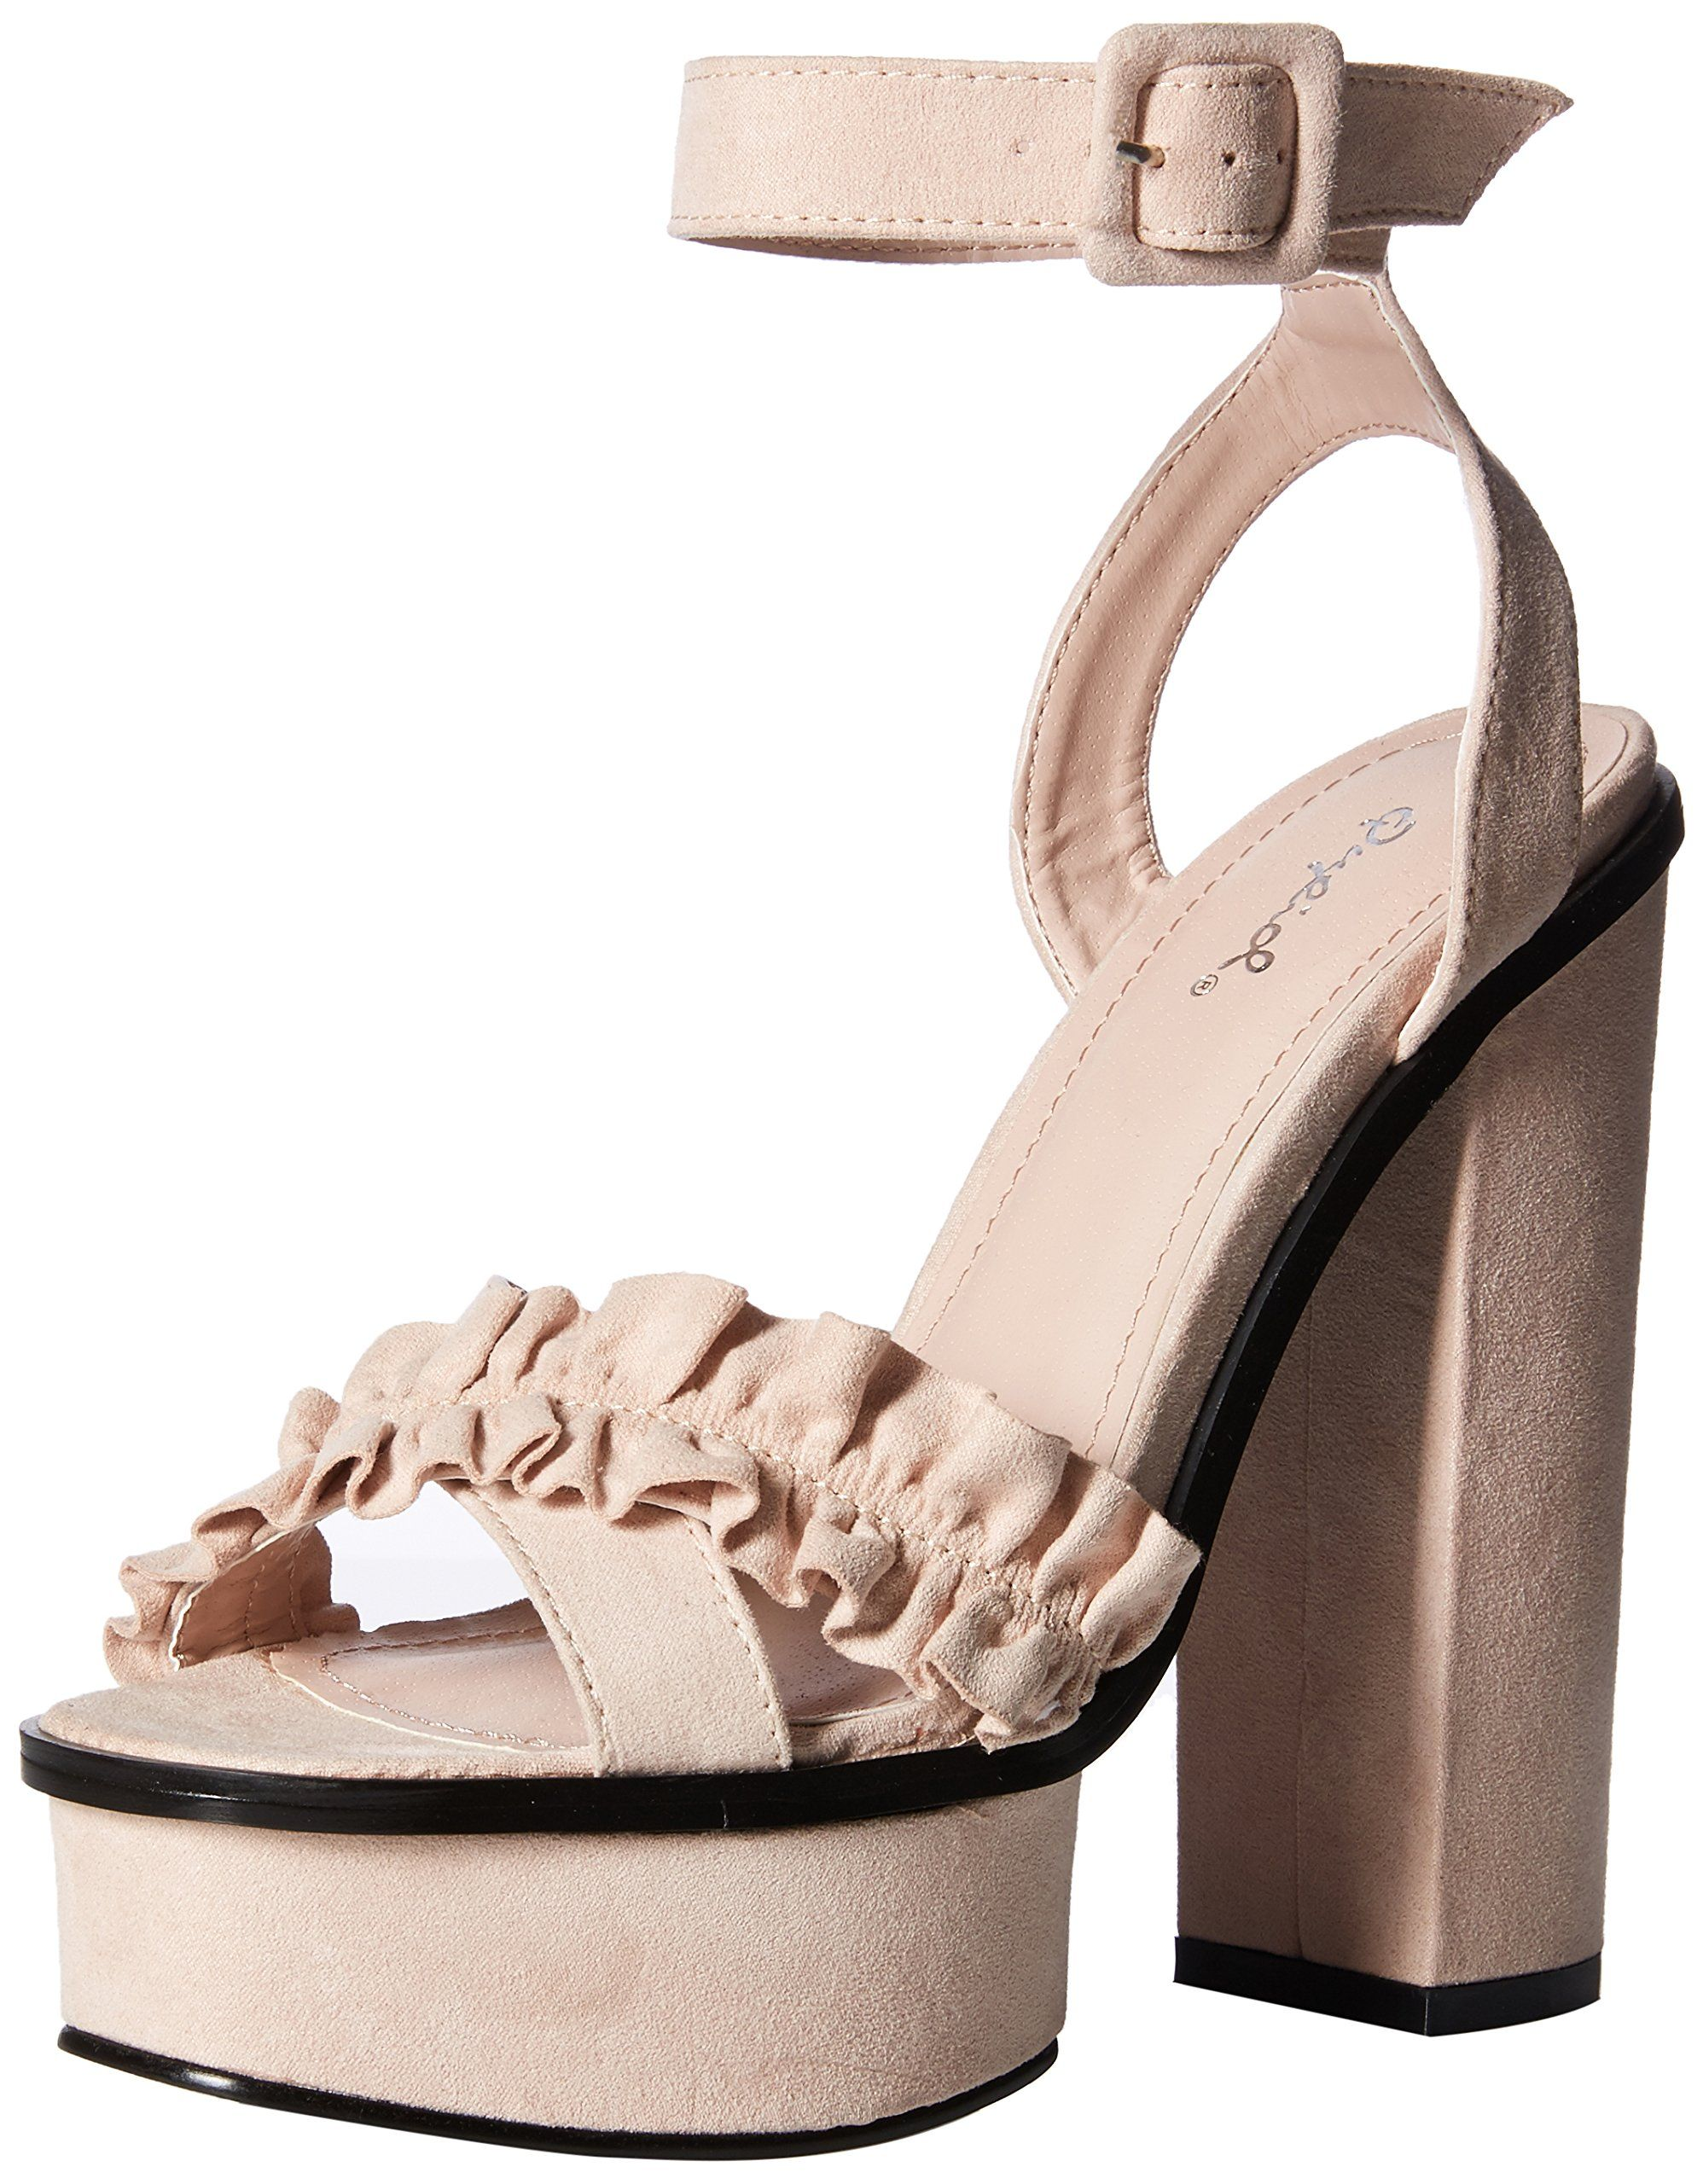 13bd32e4472 Qupid Womens Platform Heeled Sandal Nude Suede 9 M US -- Click image for  more details. (This is an affiliate link)  womenssandals